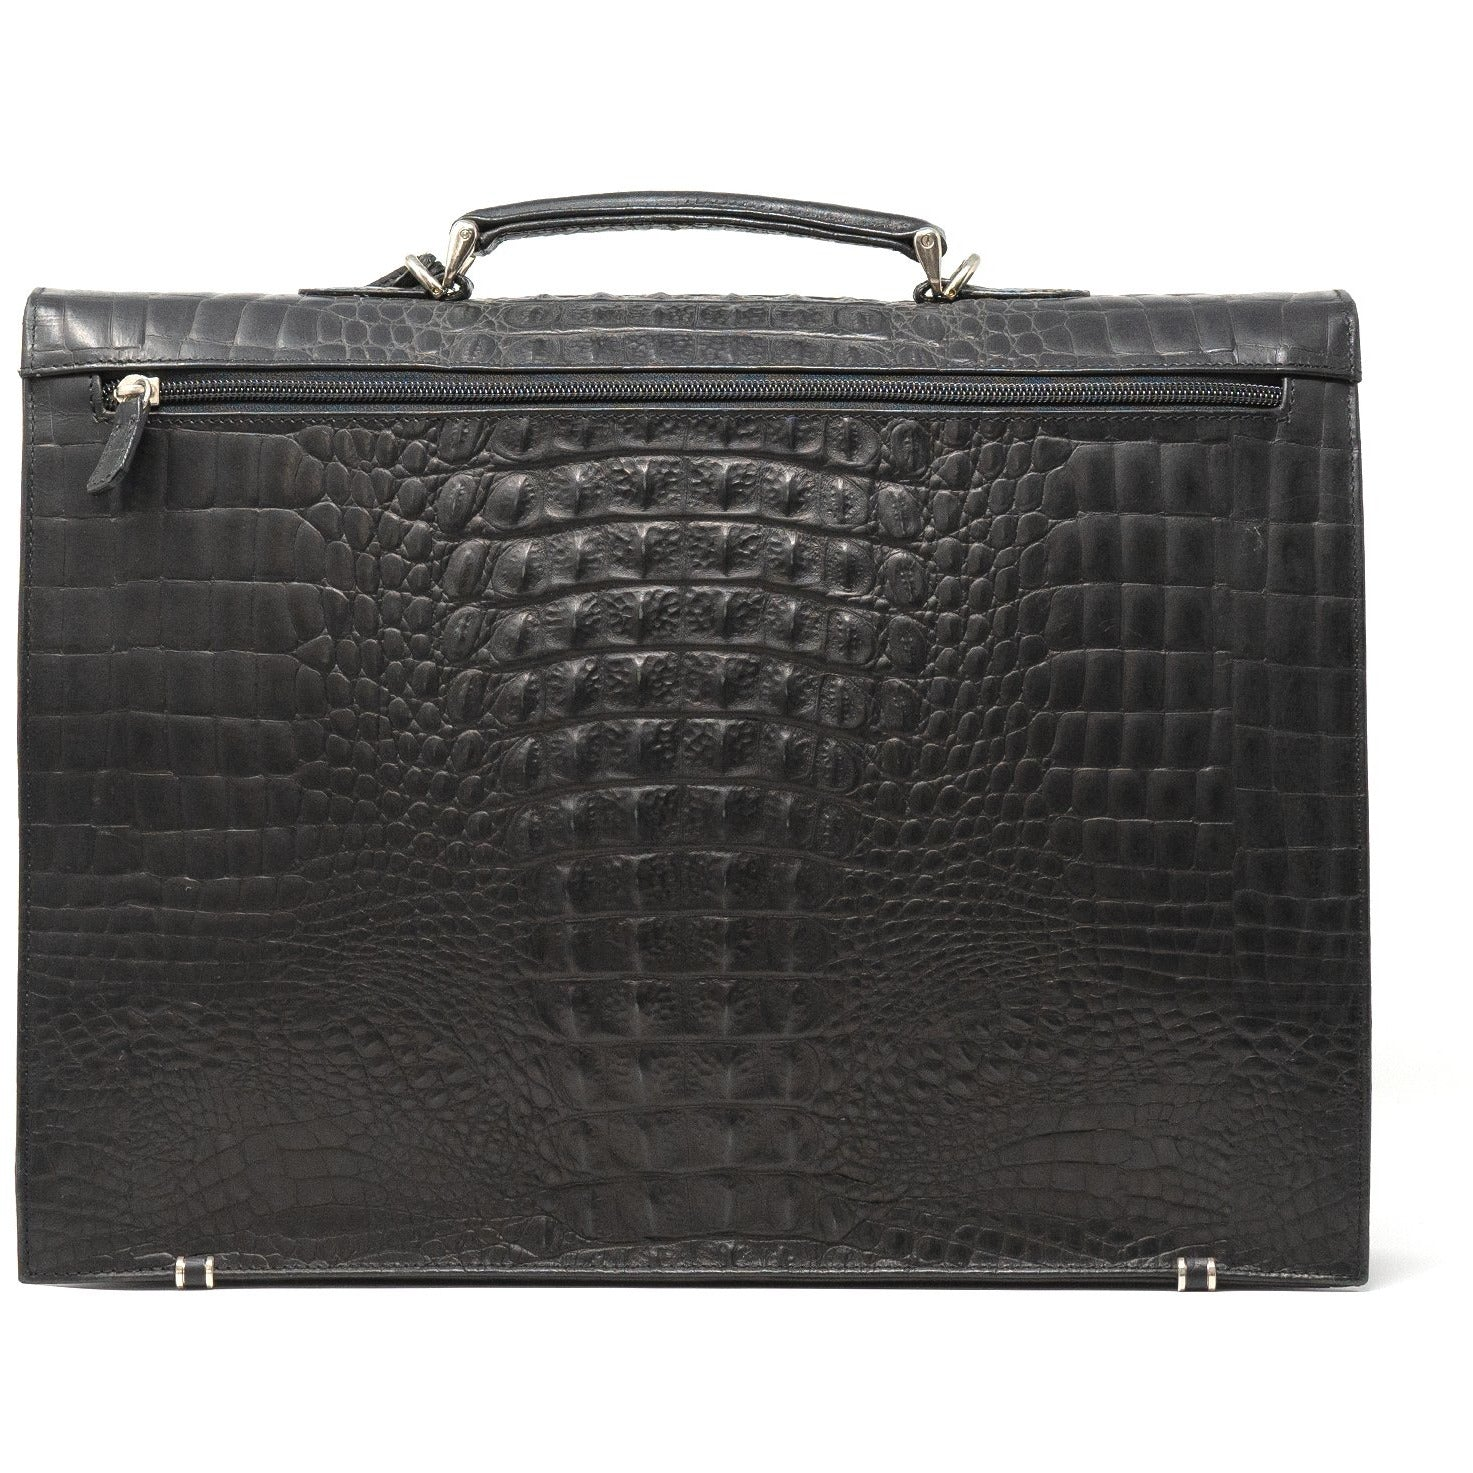 JT324 8009 Men Briefcase Printed Alligator - Jennifer Tattanelli